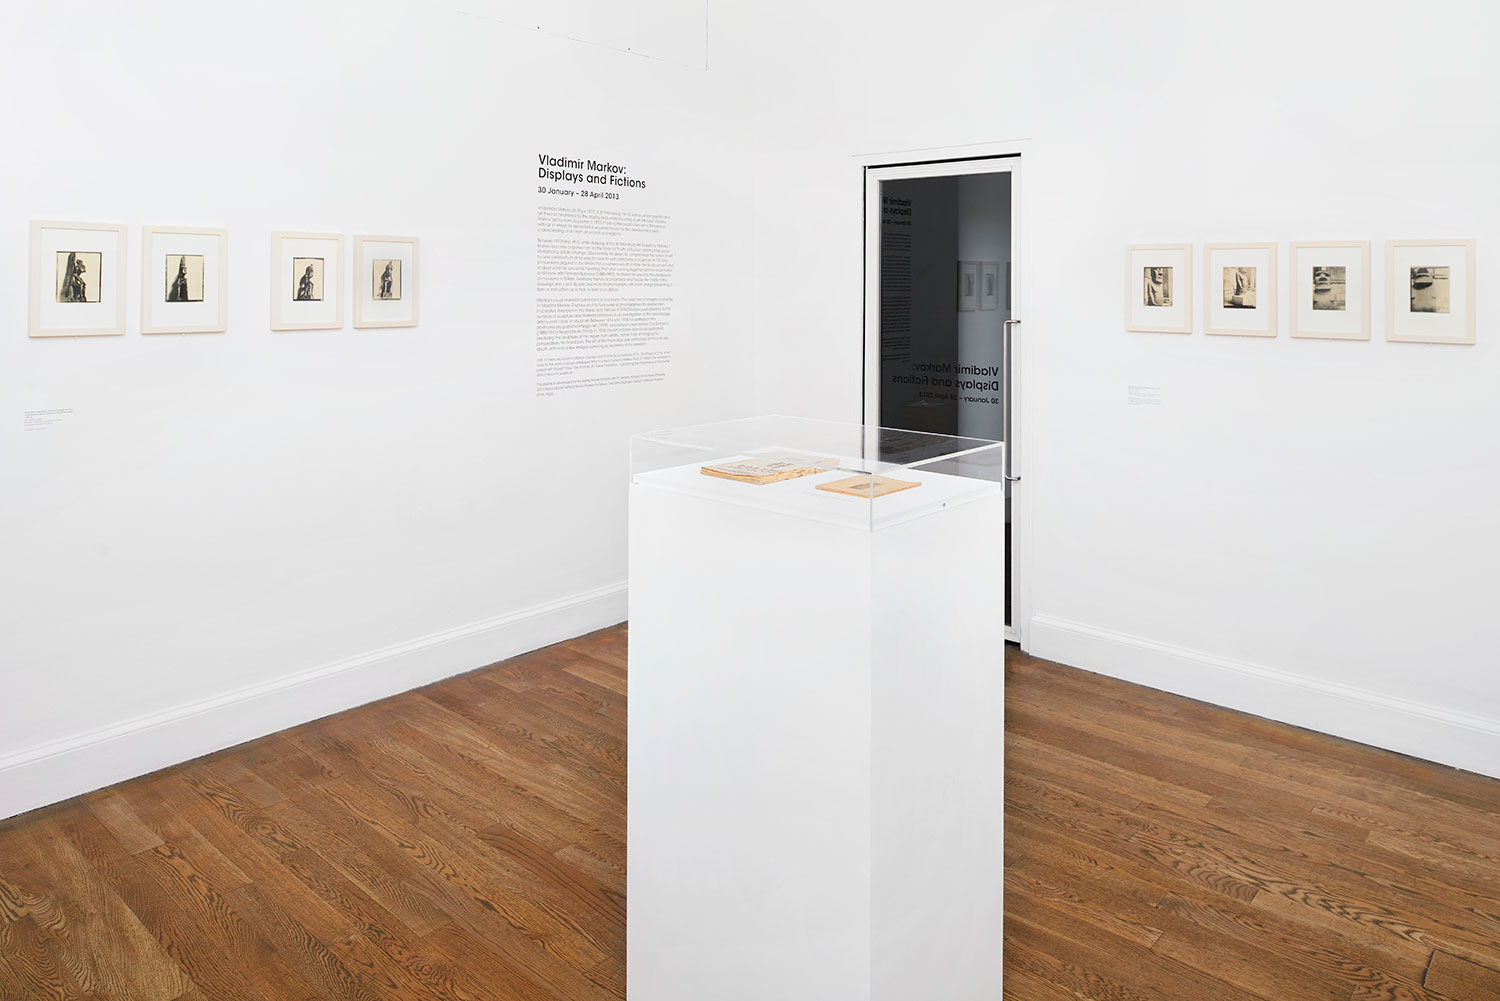 Installation view of Vladimir Markov: Displays and Fictions 1